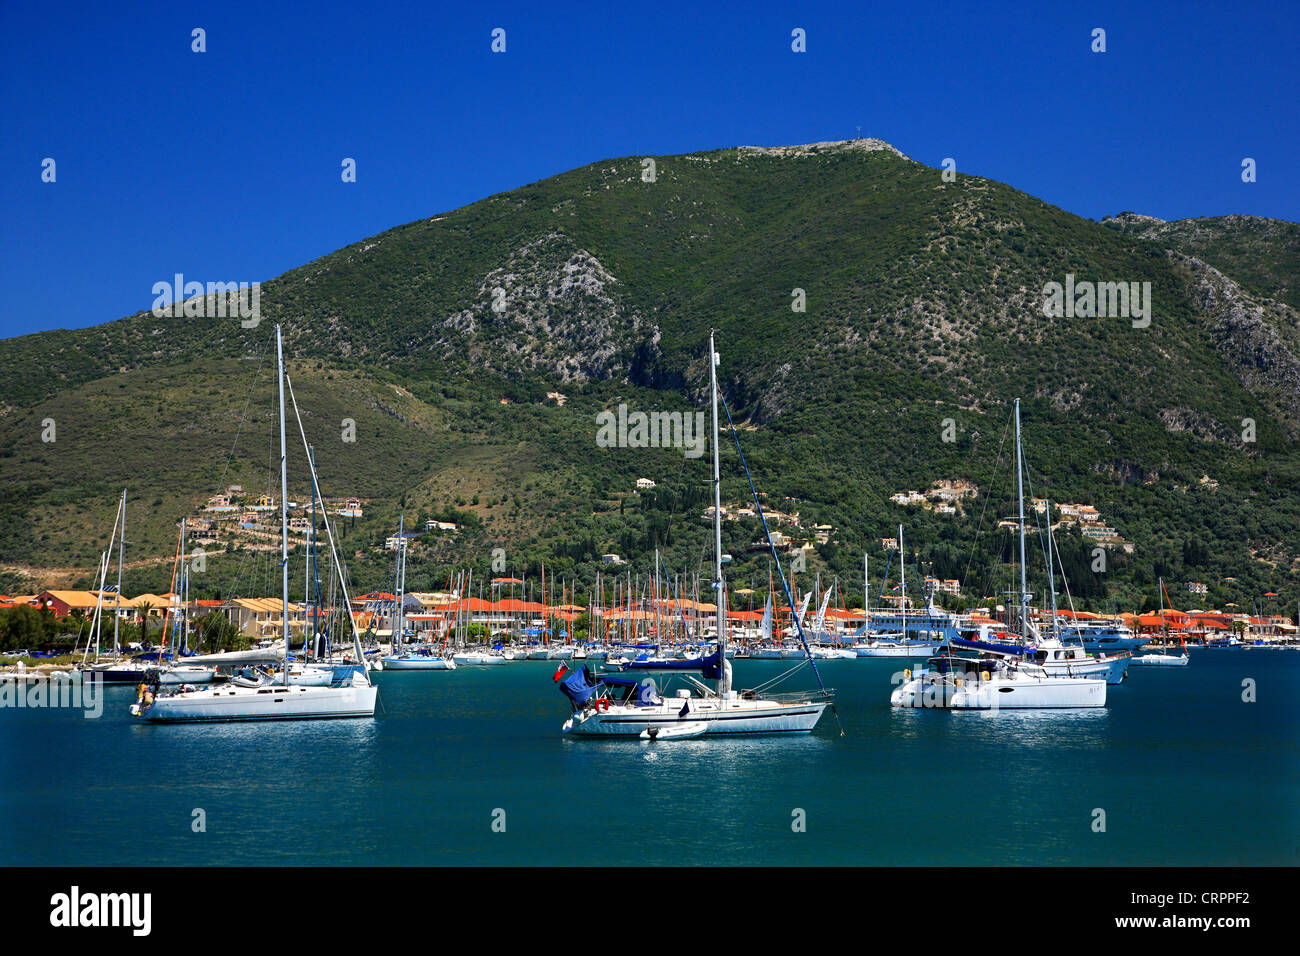 Nydri town and Vlychos bay, very popular anchorage for skippers, Lefkada (or 'Lefkas') island, Ionian sea, - Stock Image